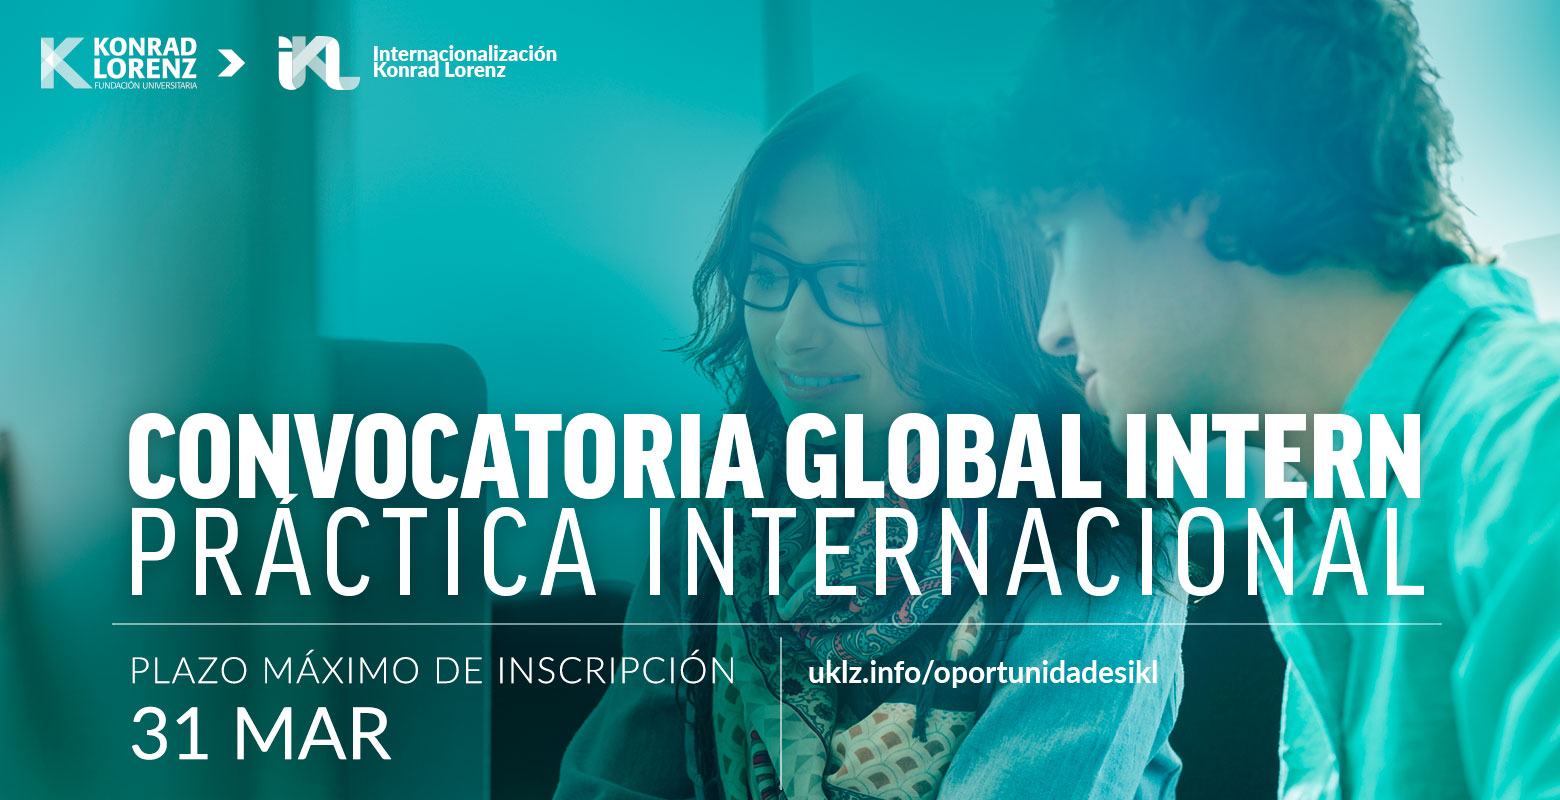 Convocatoria Global Intern: Práctica Internacional